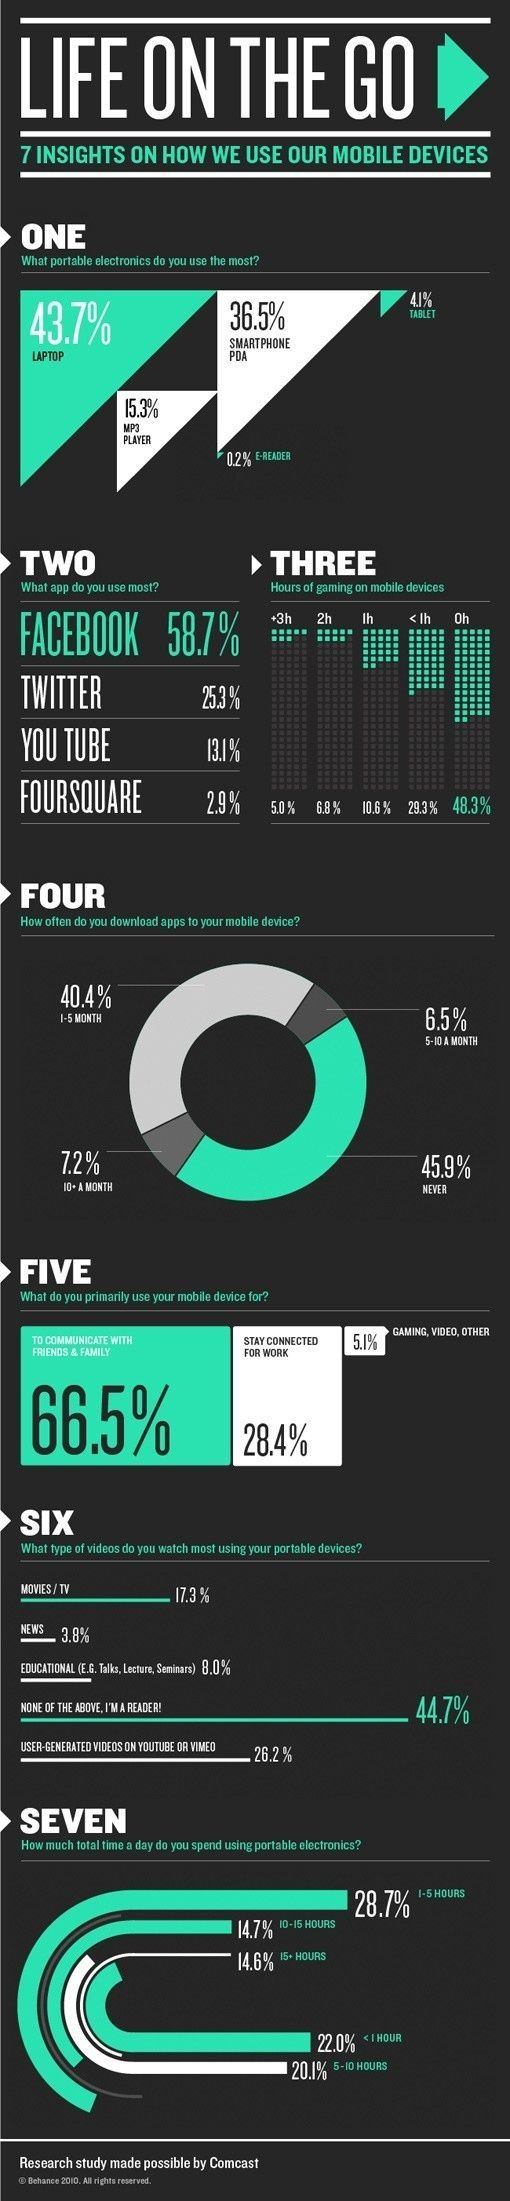 I like the design of the infographic and how it has a chart section, percentage and all different kinds of way to show the information. Also. the color scheme is really cool, with 2 neutral colors, black and white, and a cool teal color